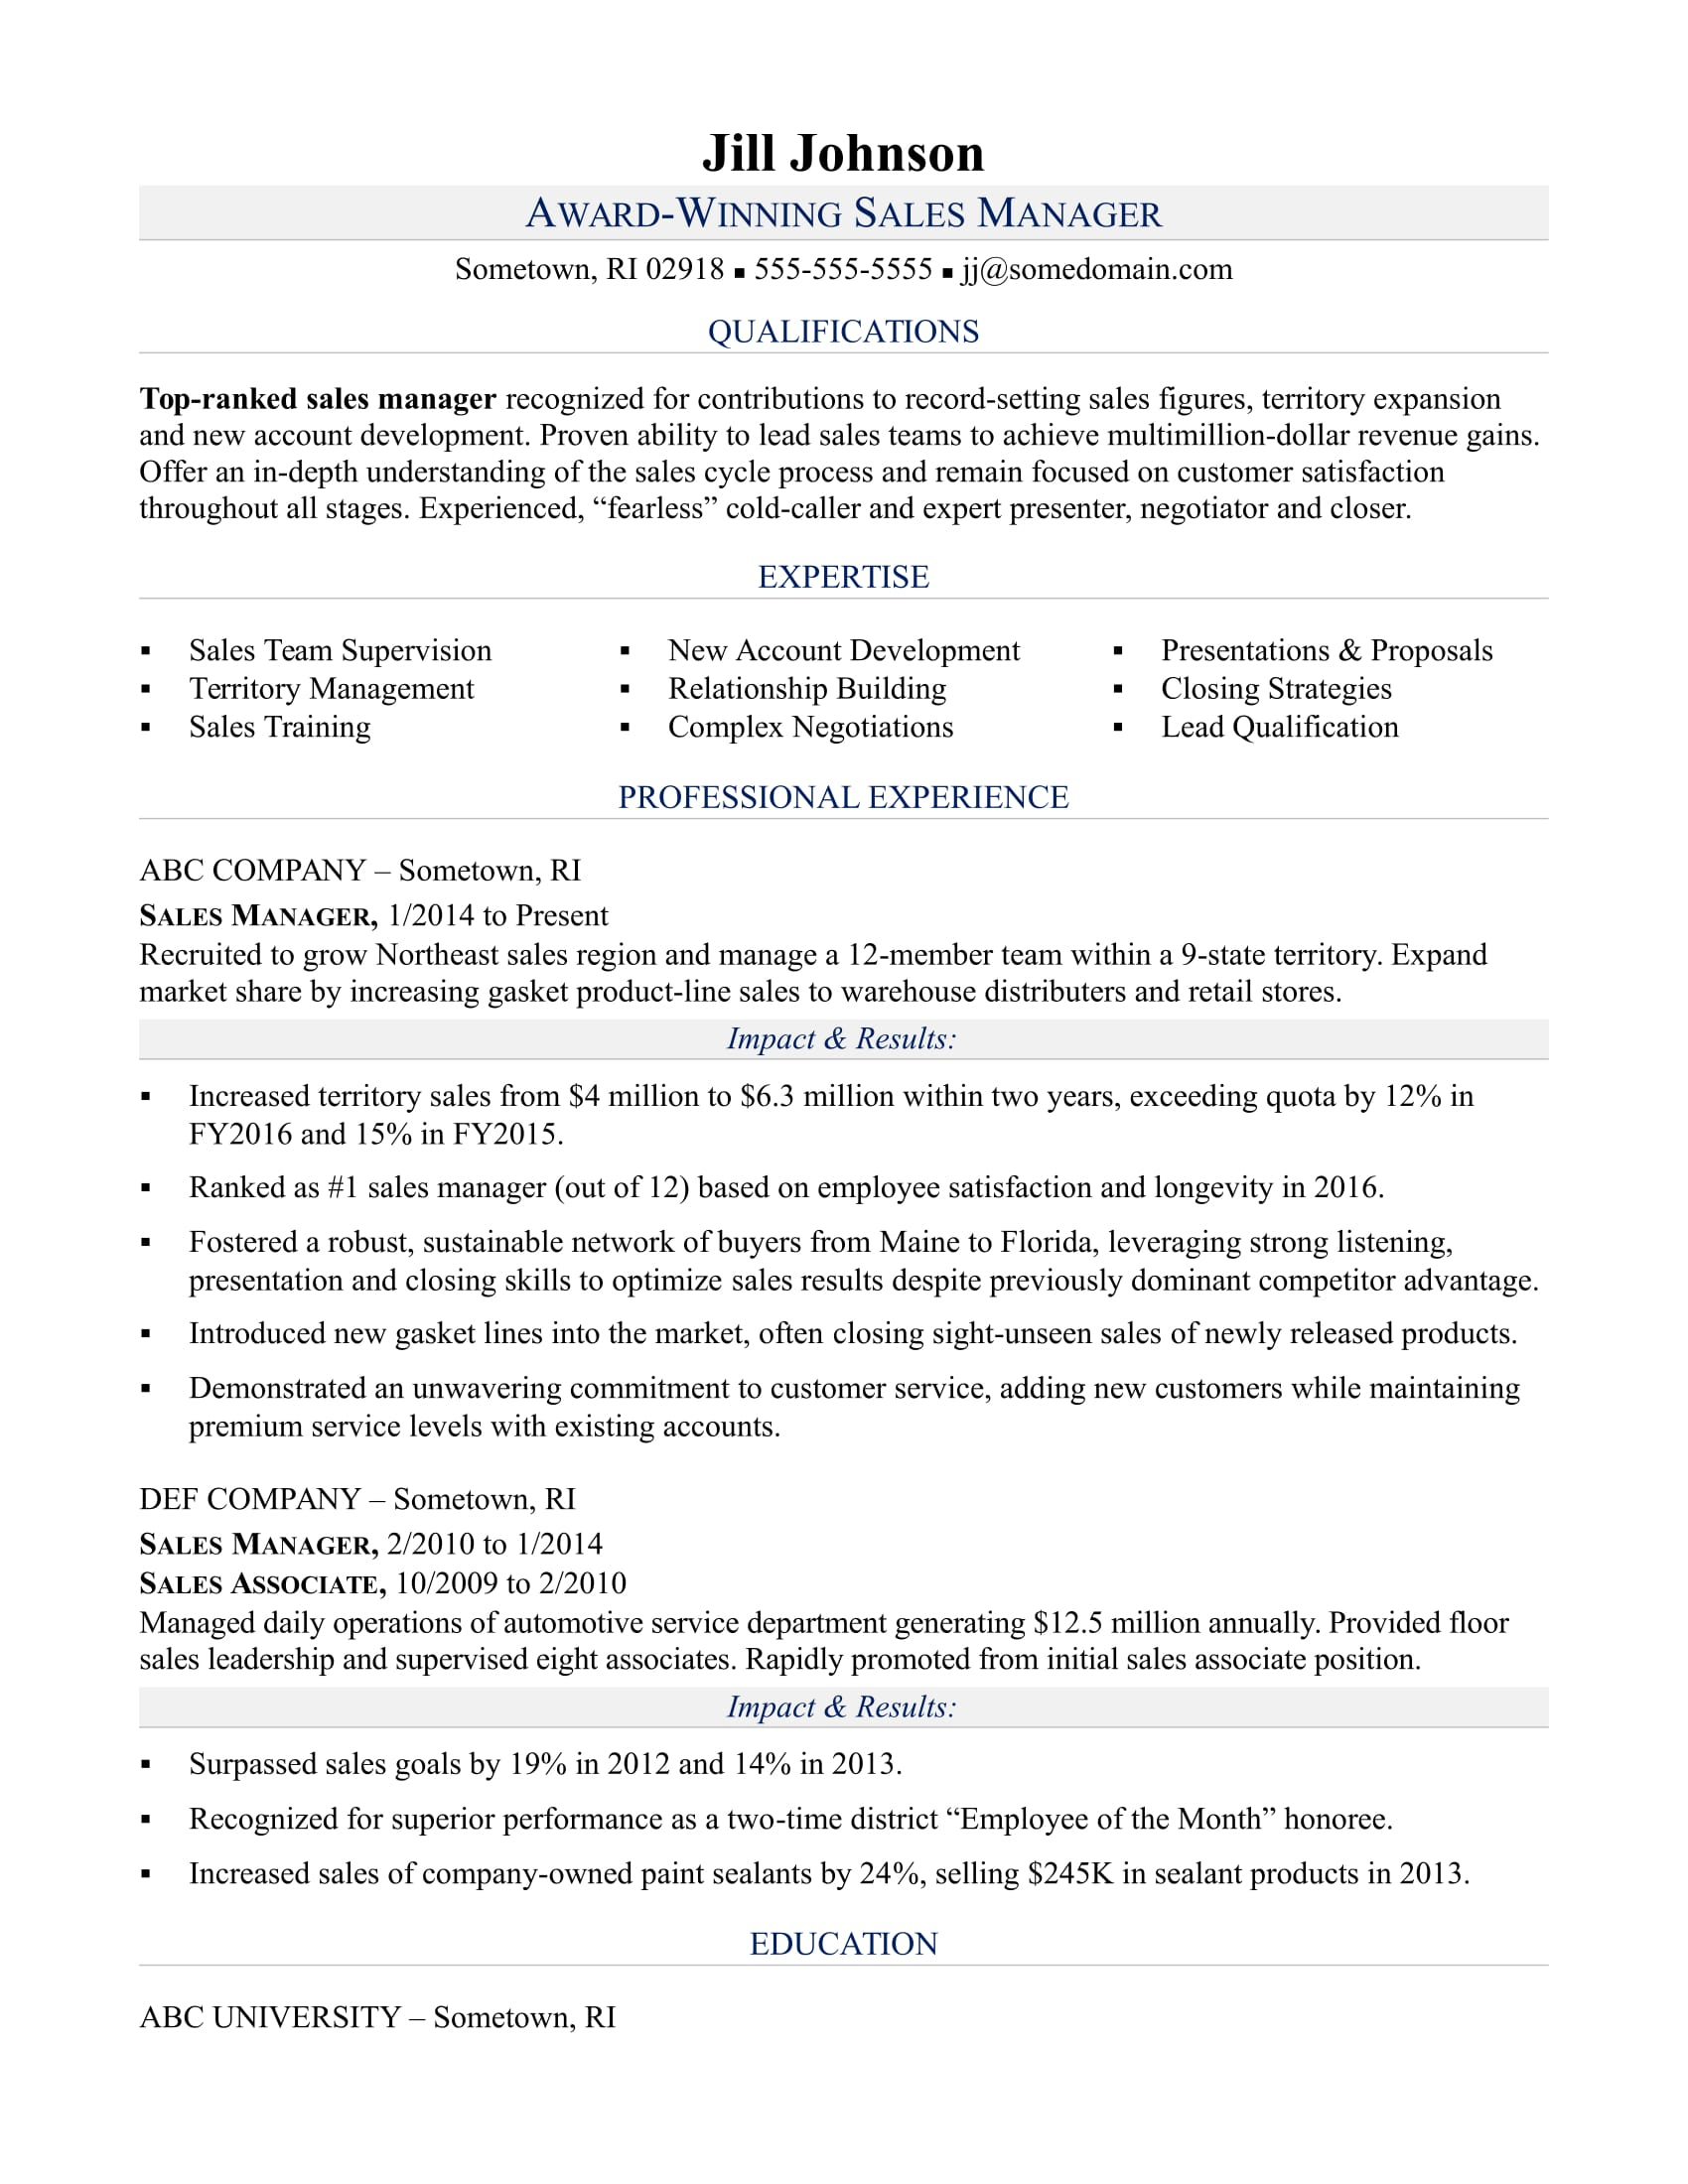 Sample Resume For A Sales Manager  Company Resume Template